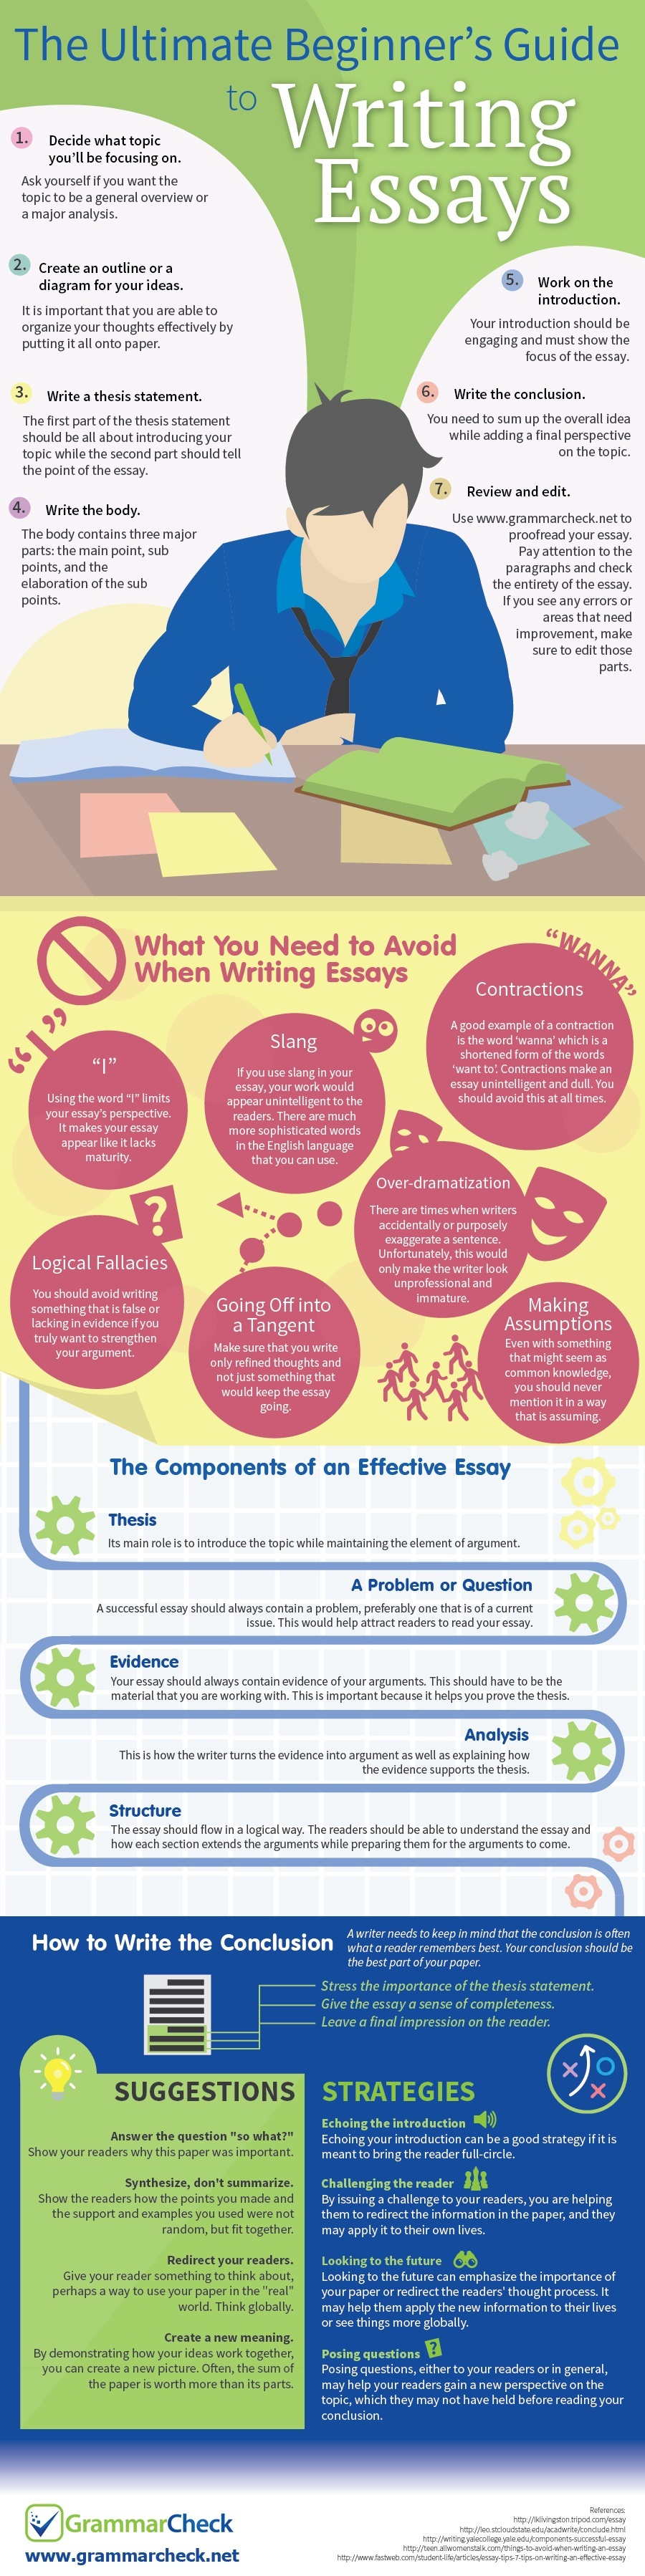 Locavores Synthesis Essay  Persuasive Essays For High School also Descriptive Essay Topics For High School Students The Ultimate Beginners Guide To Writing Essays Infographic Universal Health Care Essay